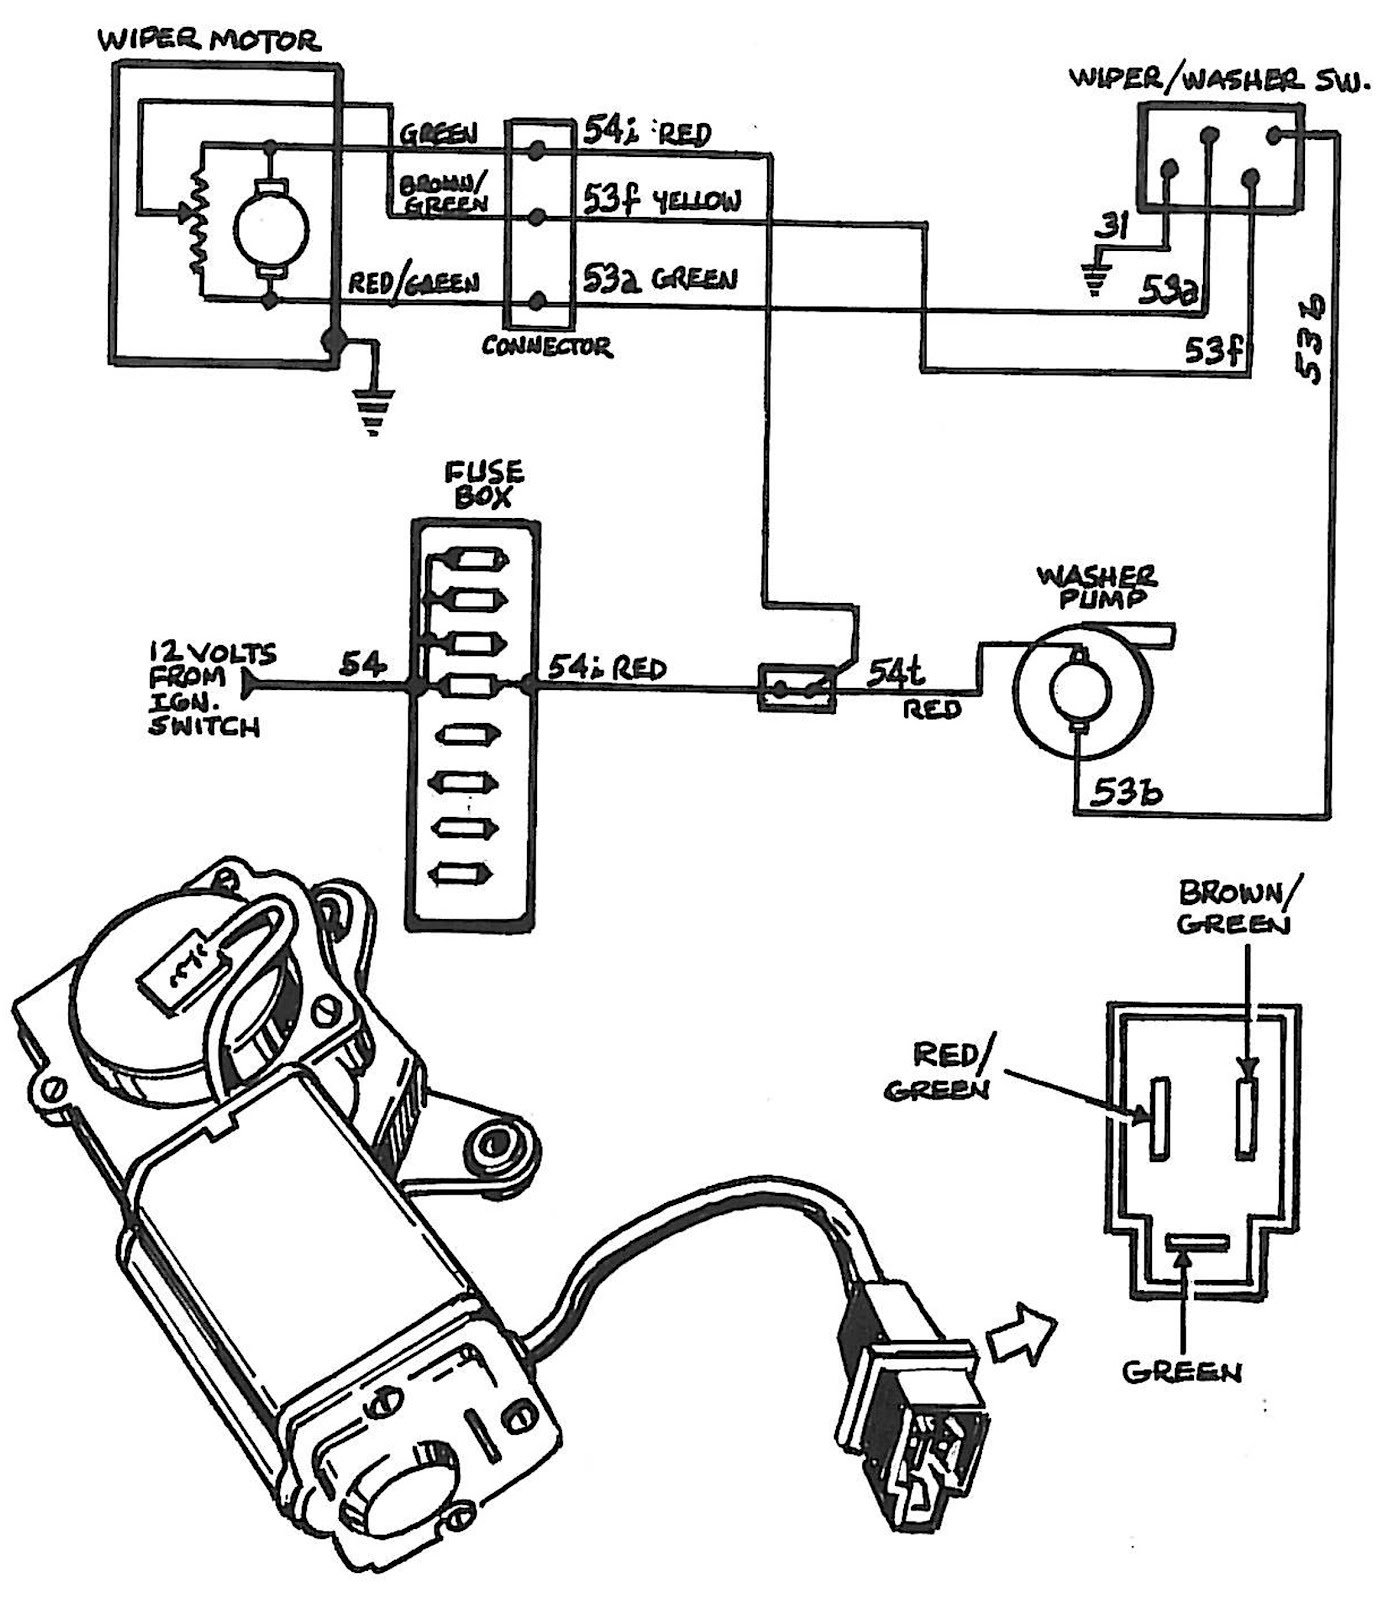 1965 chevy c10 wiper motor wiring diagram - wiring diagram system  mile-image - mile-image.ediliadesign.it  ediliadesign.it